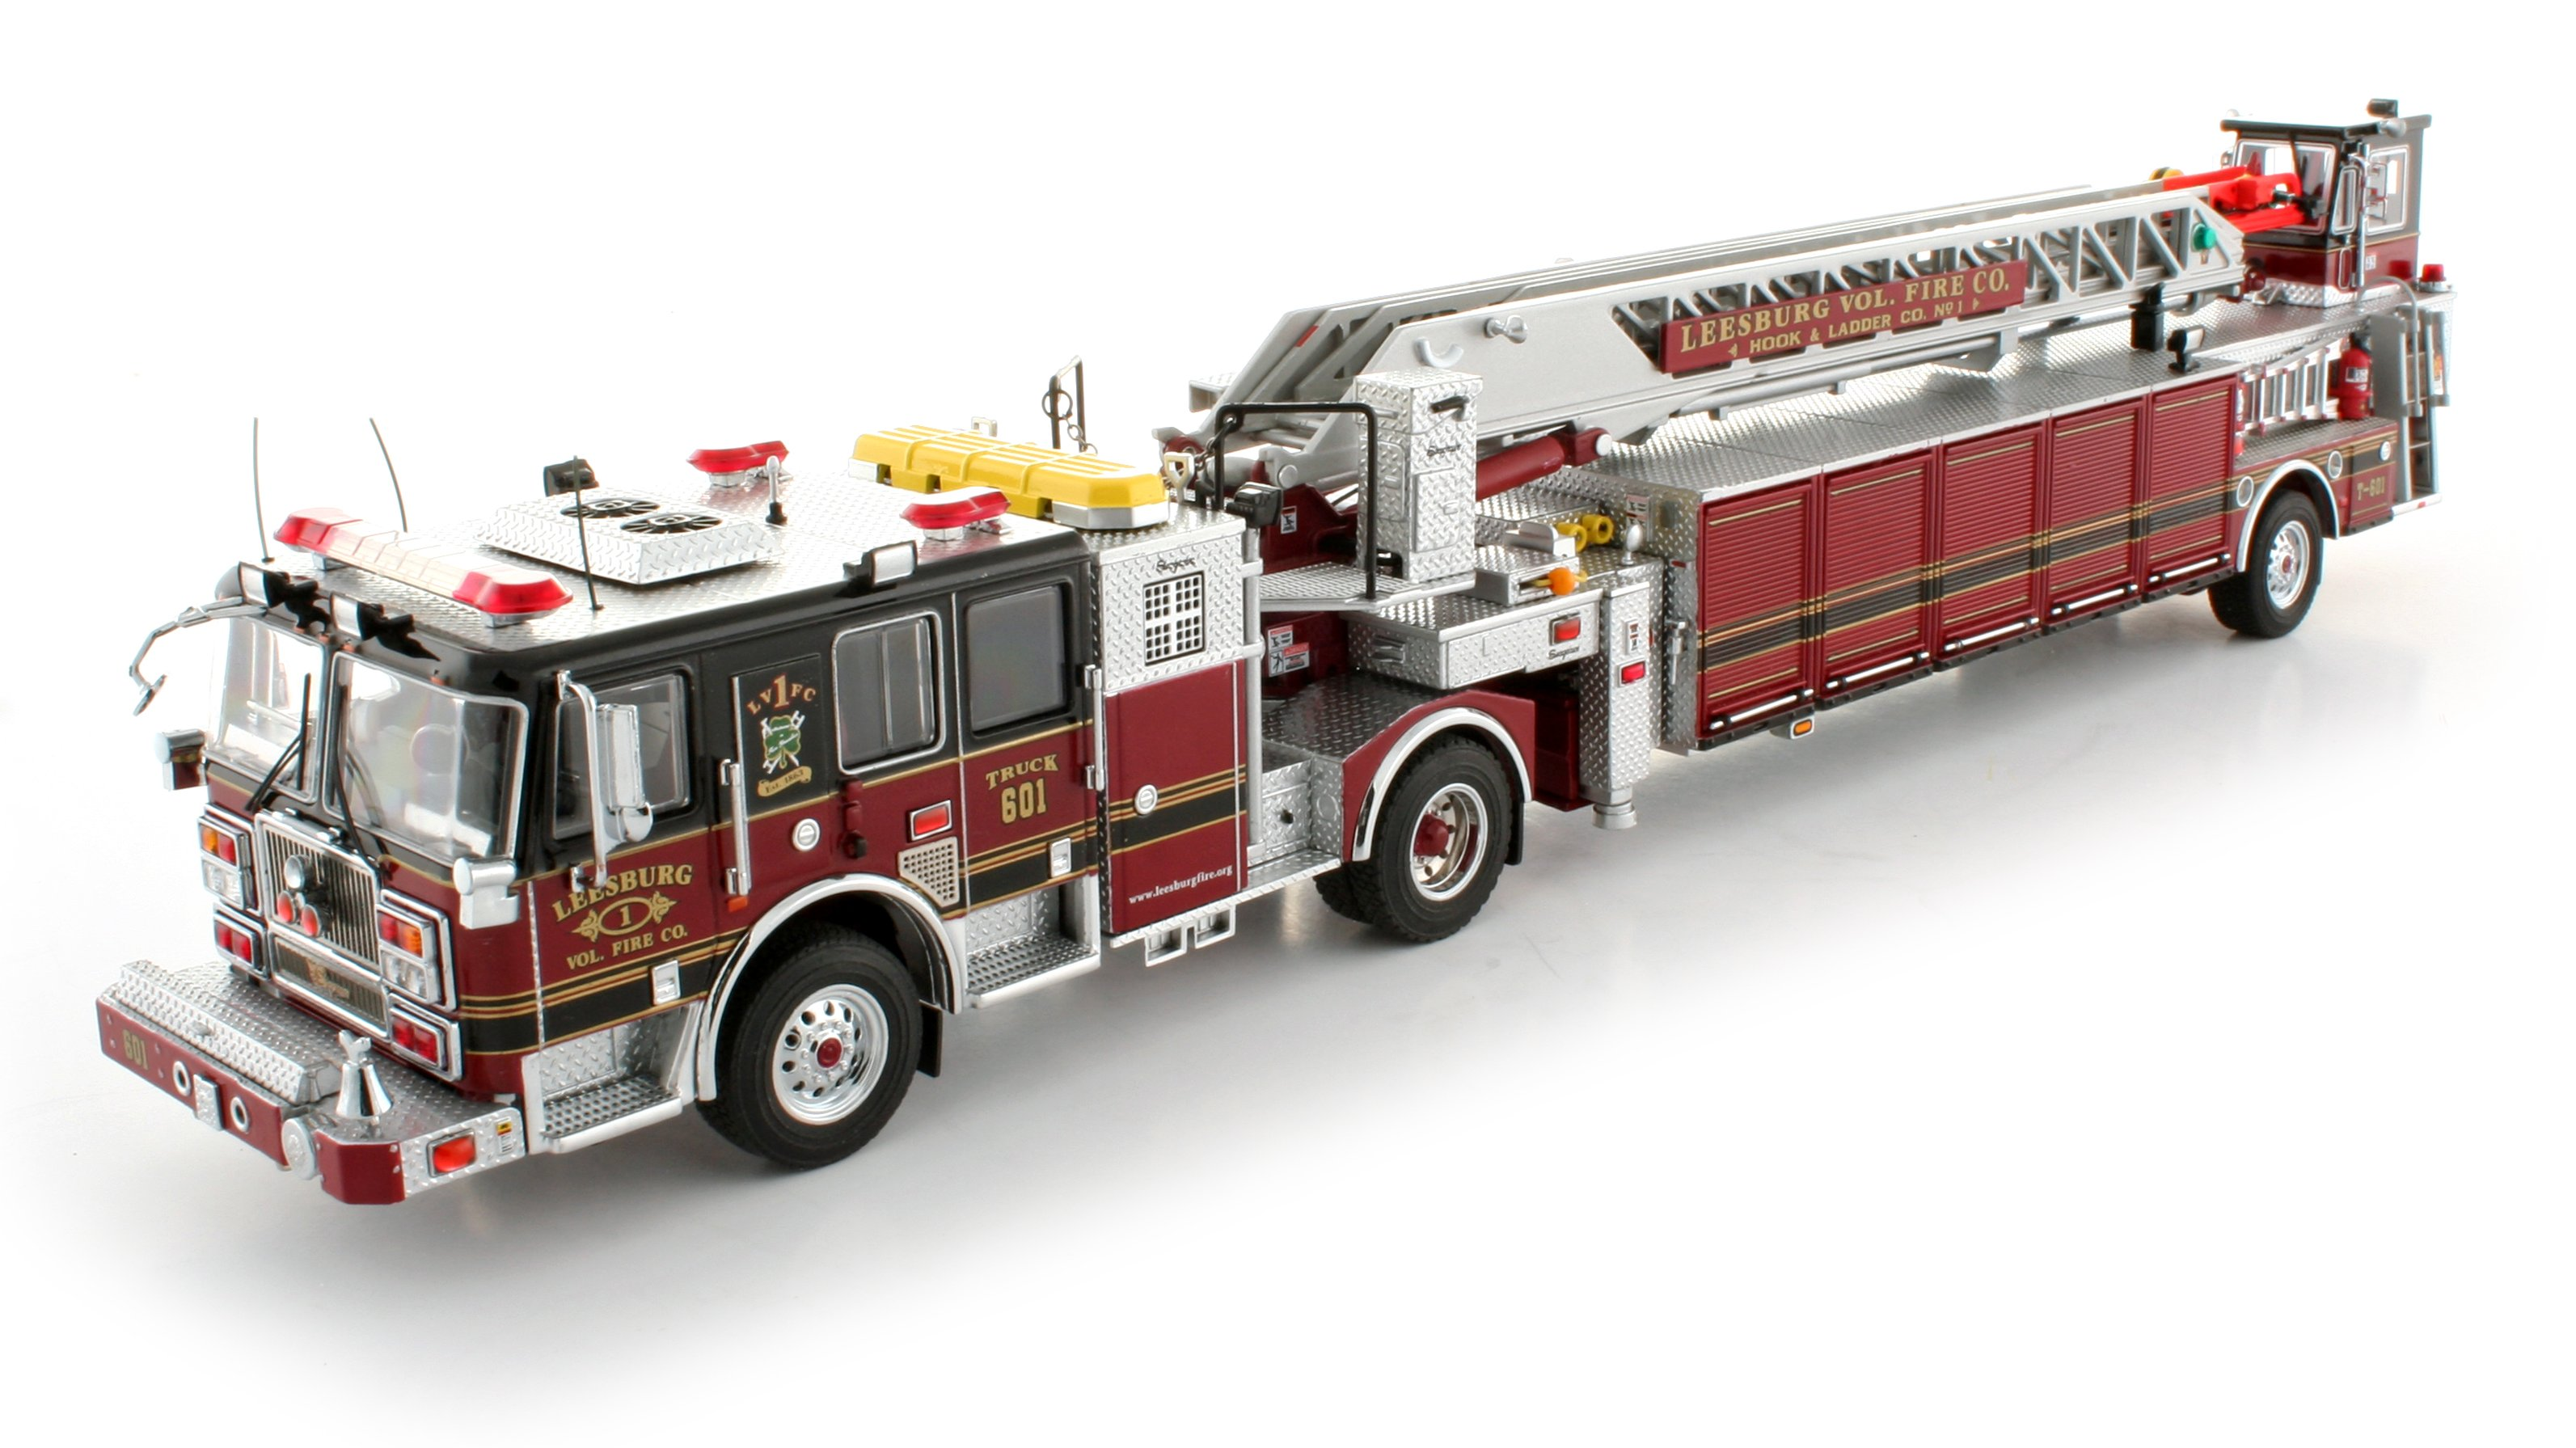 2016 Seagrave ladder photo - 1